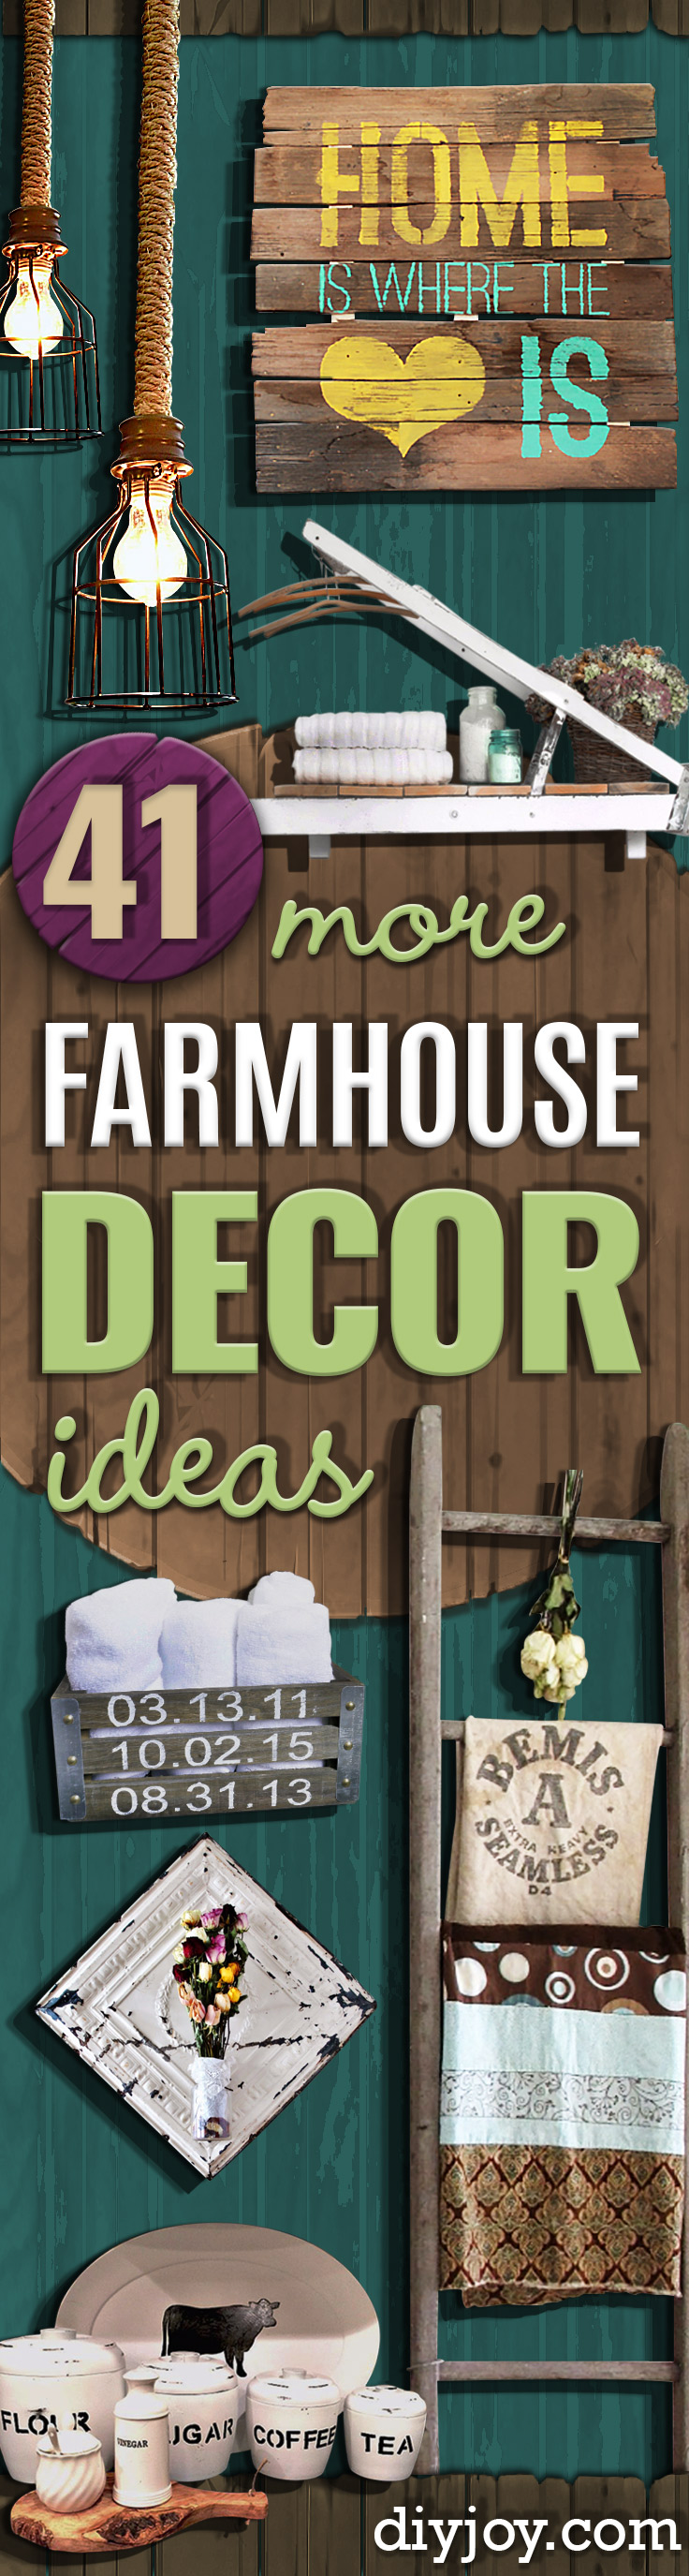 DIY Farmhouse Style Decor Ideas - Creative Rustic Ideas for Cool Furniture, Paint Colors, Farm House Decoration for Living Room, Kitchen and Bedroom #farmhouse #diydecor #diyideas #diy